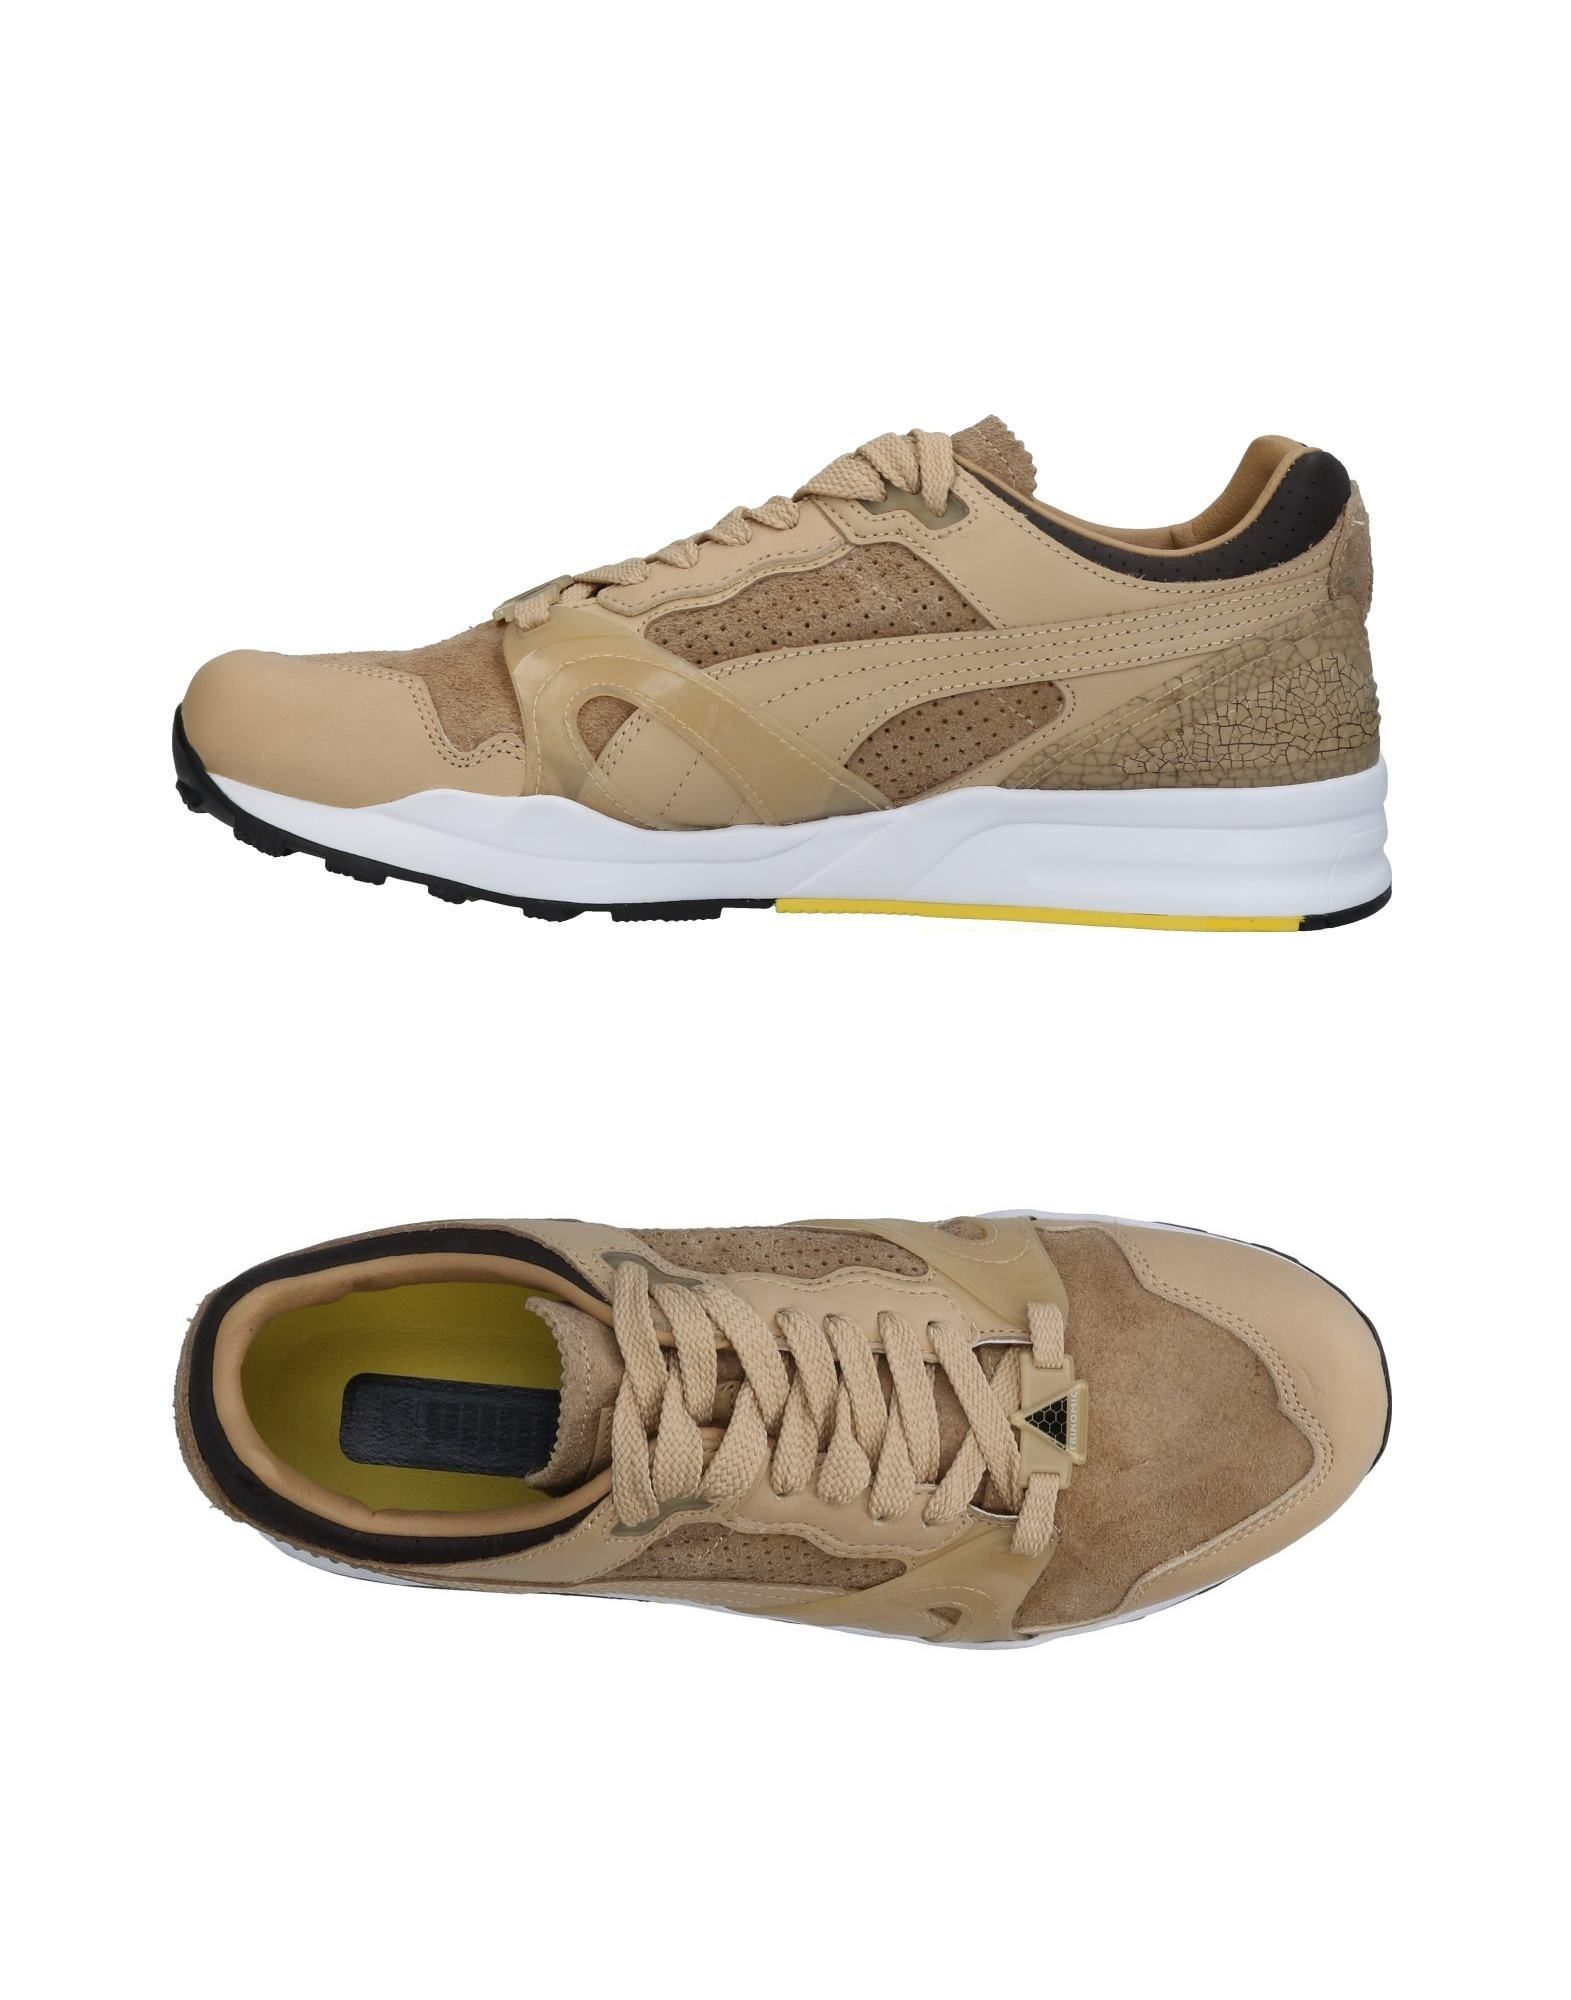 Moda Sneakers Puma Uomo - 11460310OR